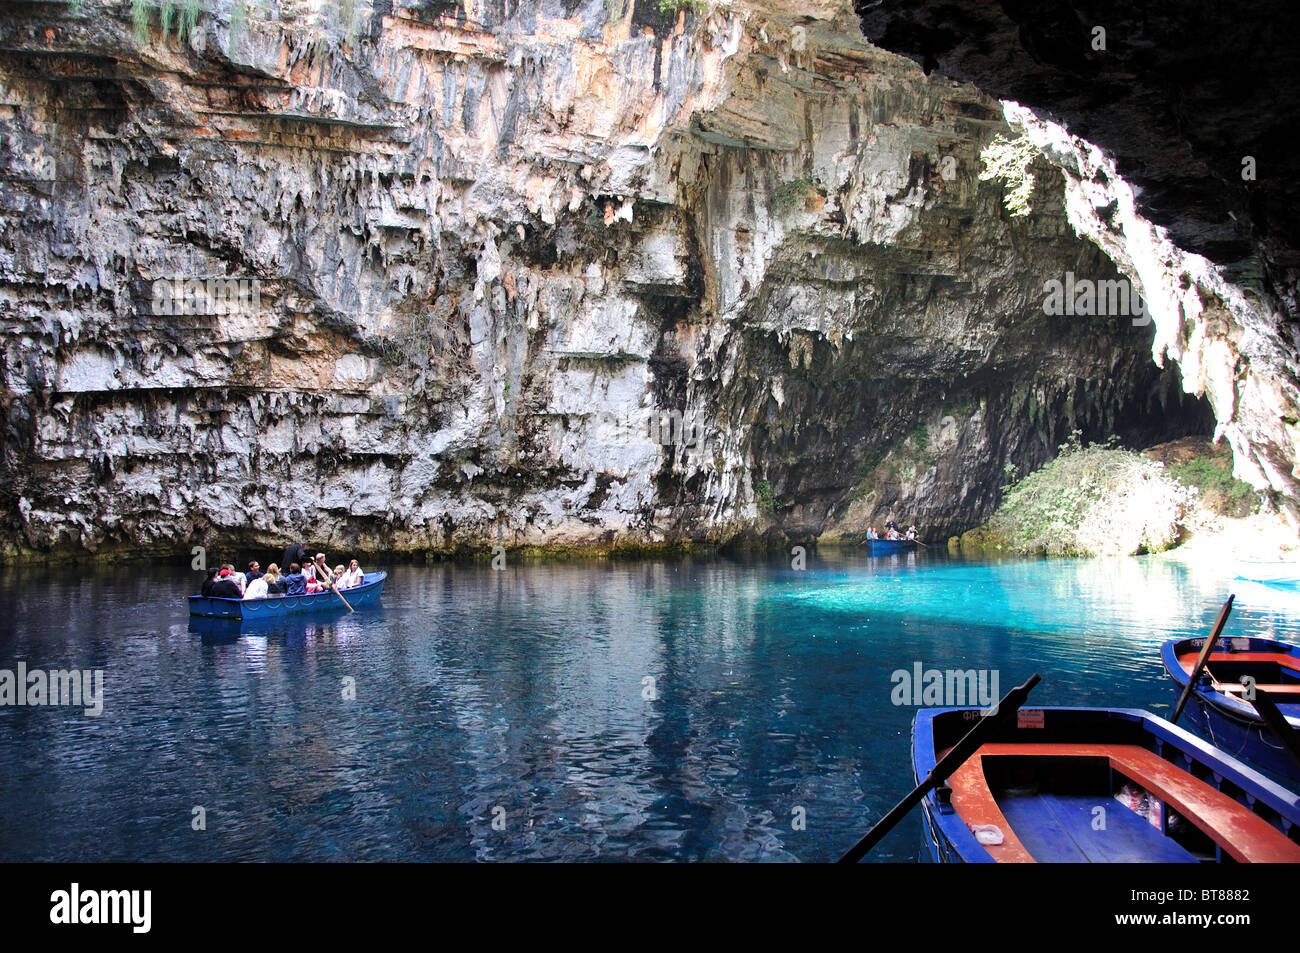 Boating on Melissani Cave Lake, Caves of Sami, near Sami, Kefalonia, Ionian Islands, Greece - Stock Image